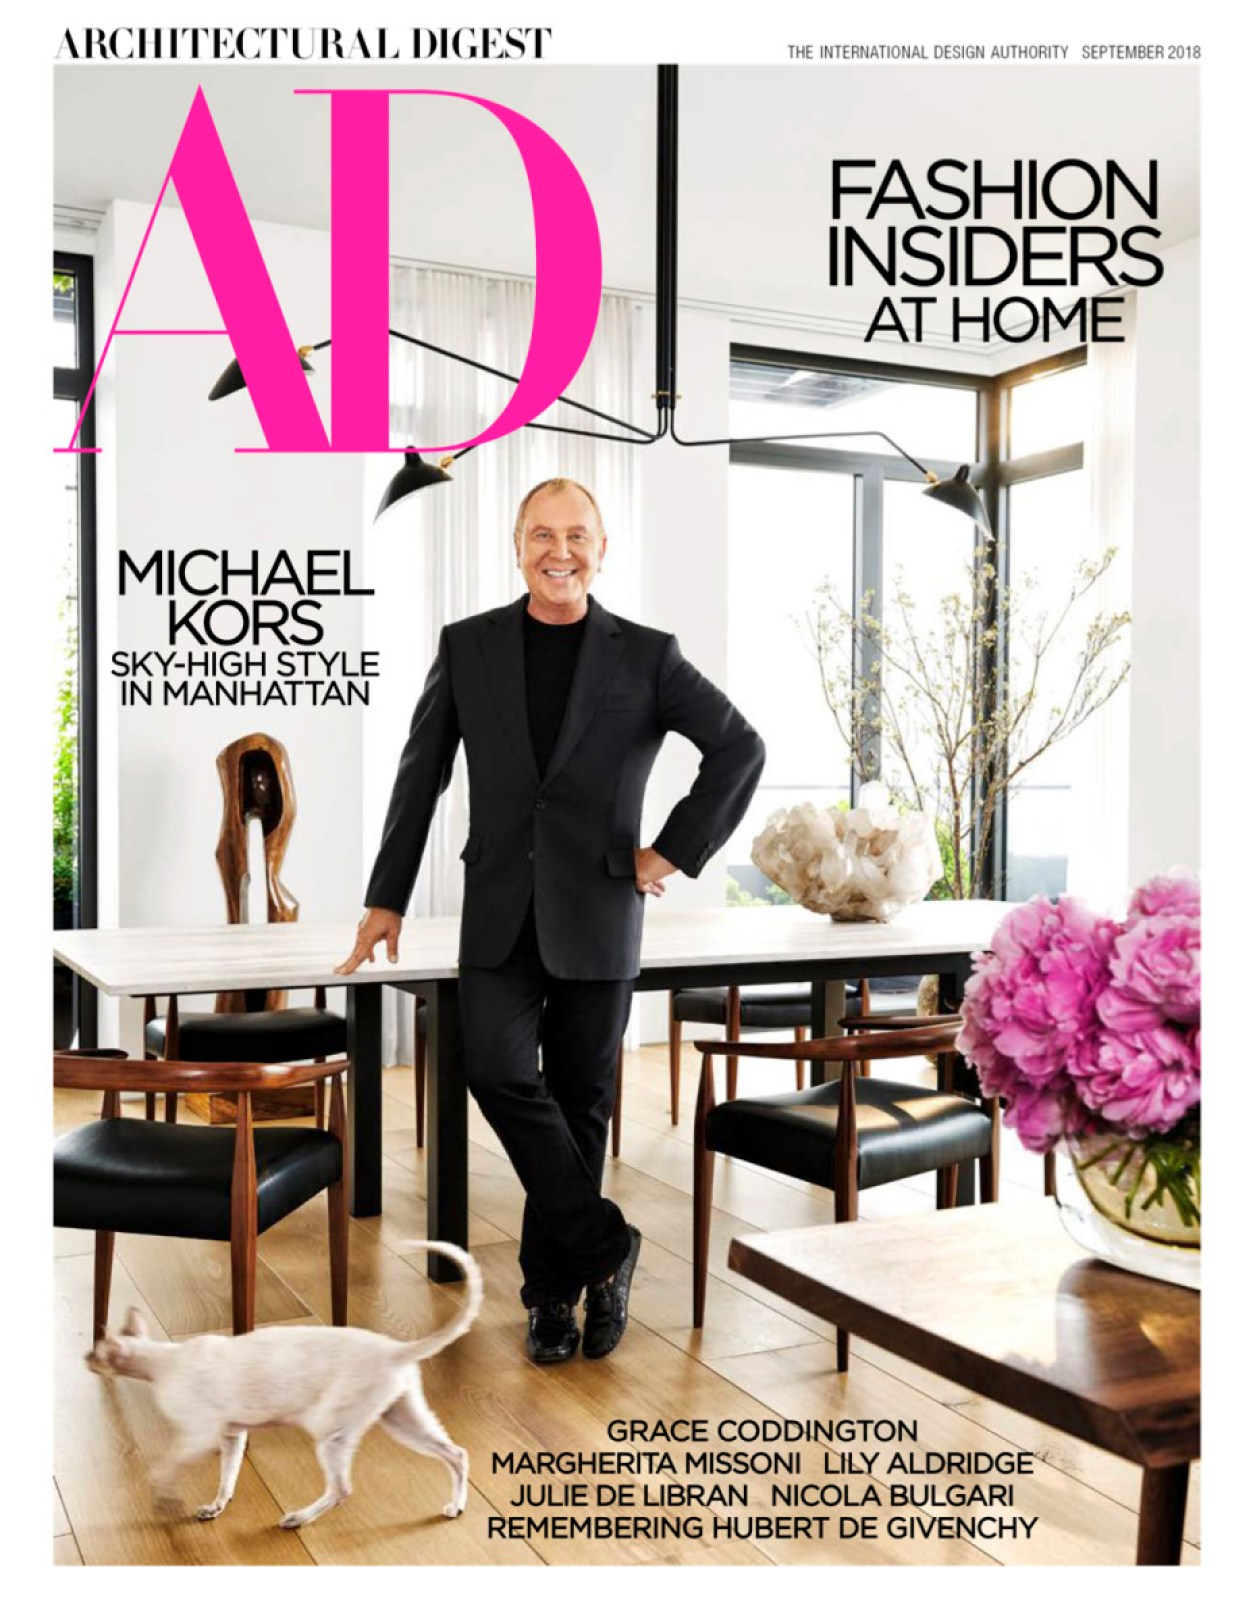 Michael Kors on the cover of the September 'Architectural Digest' issue. Photo: Architectural Digest